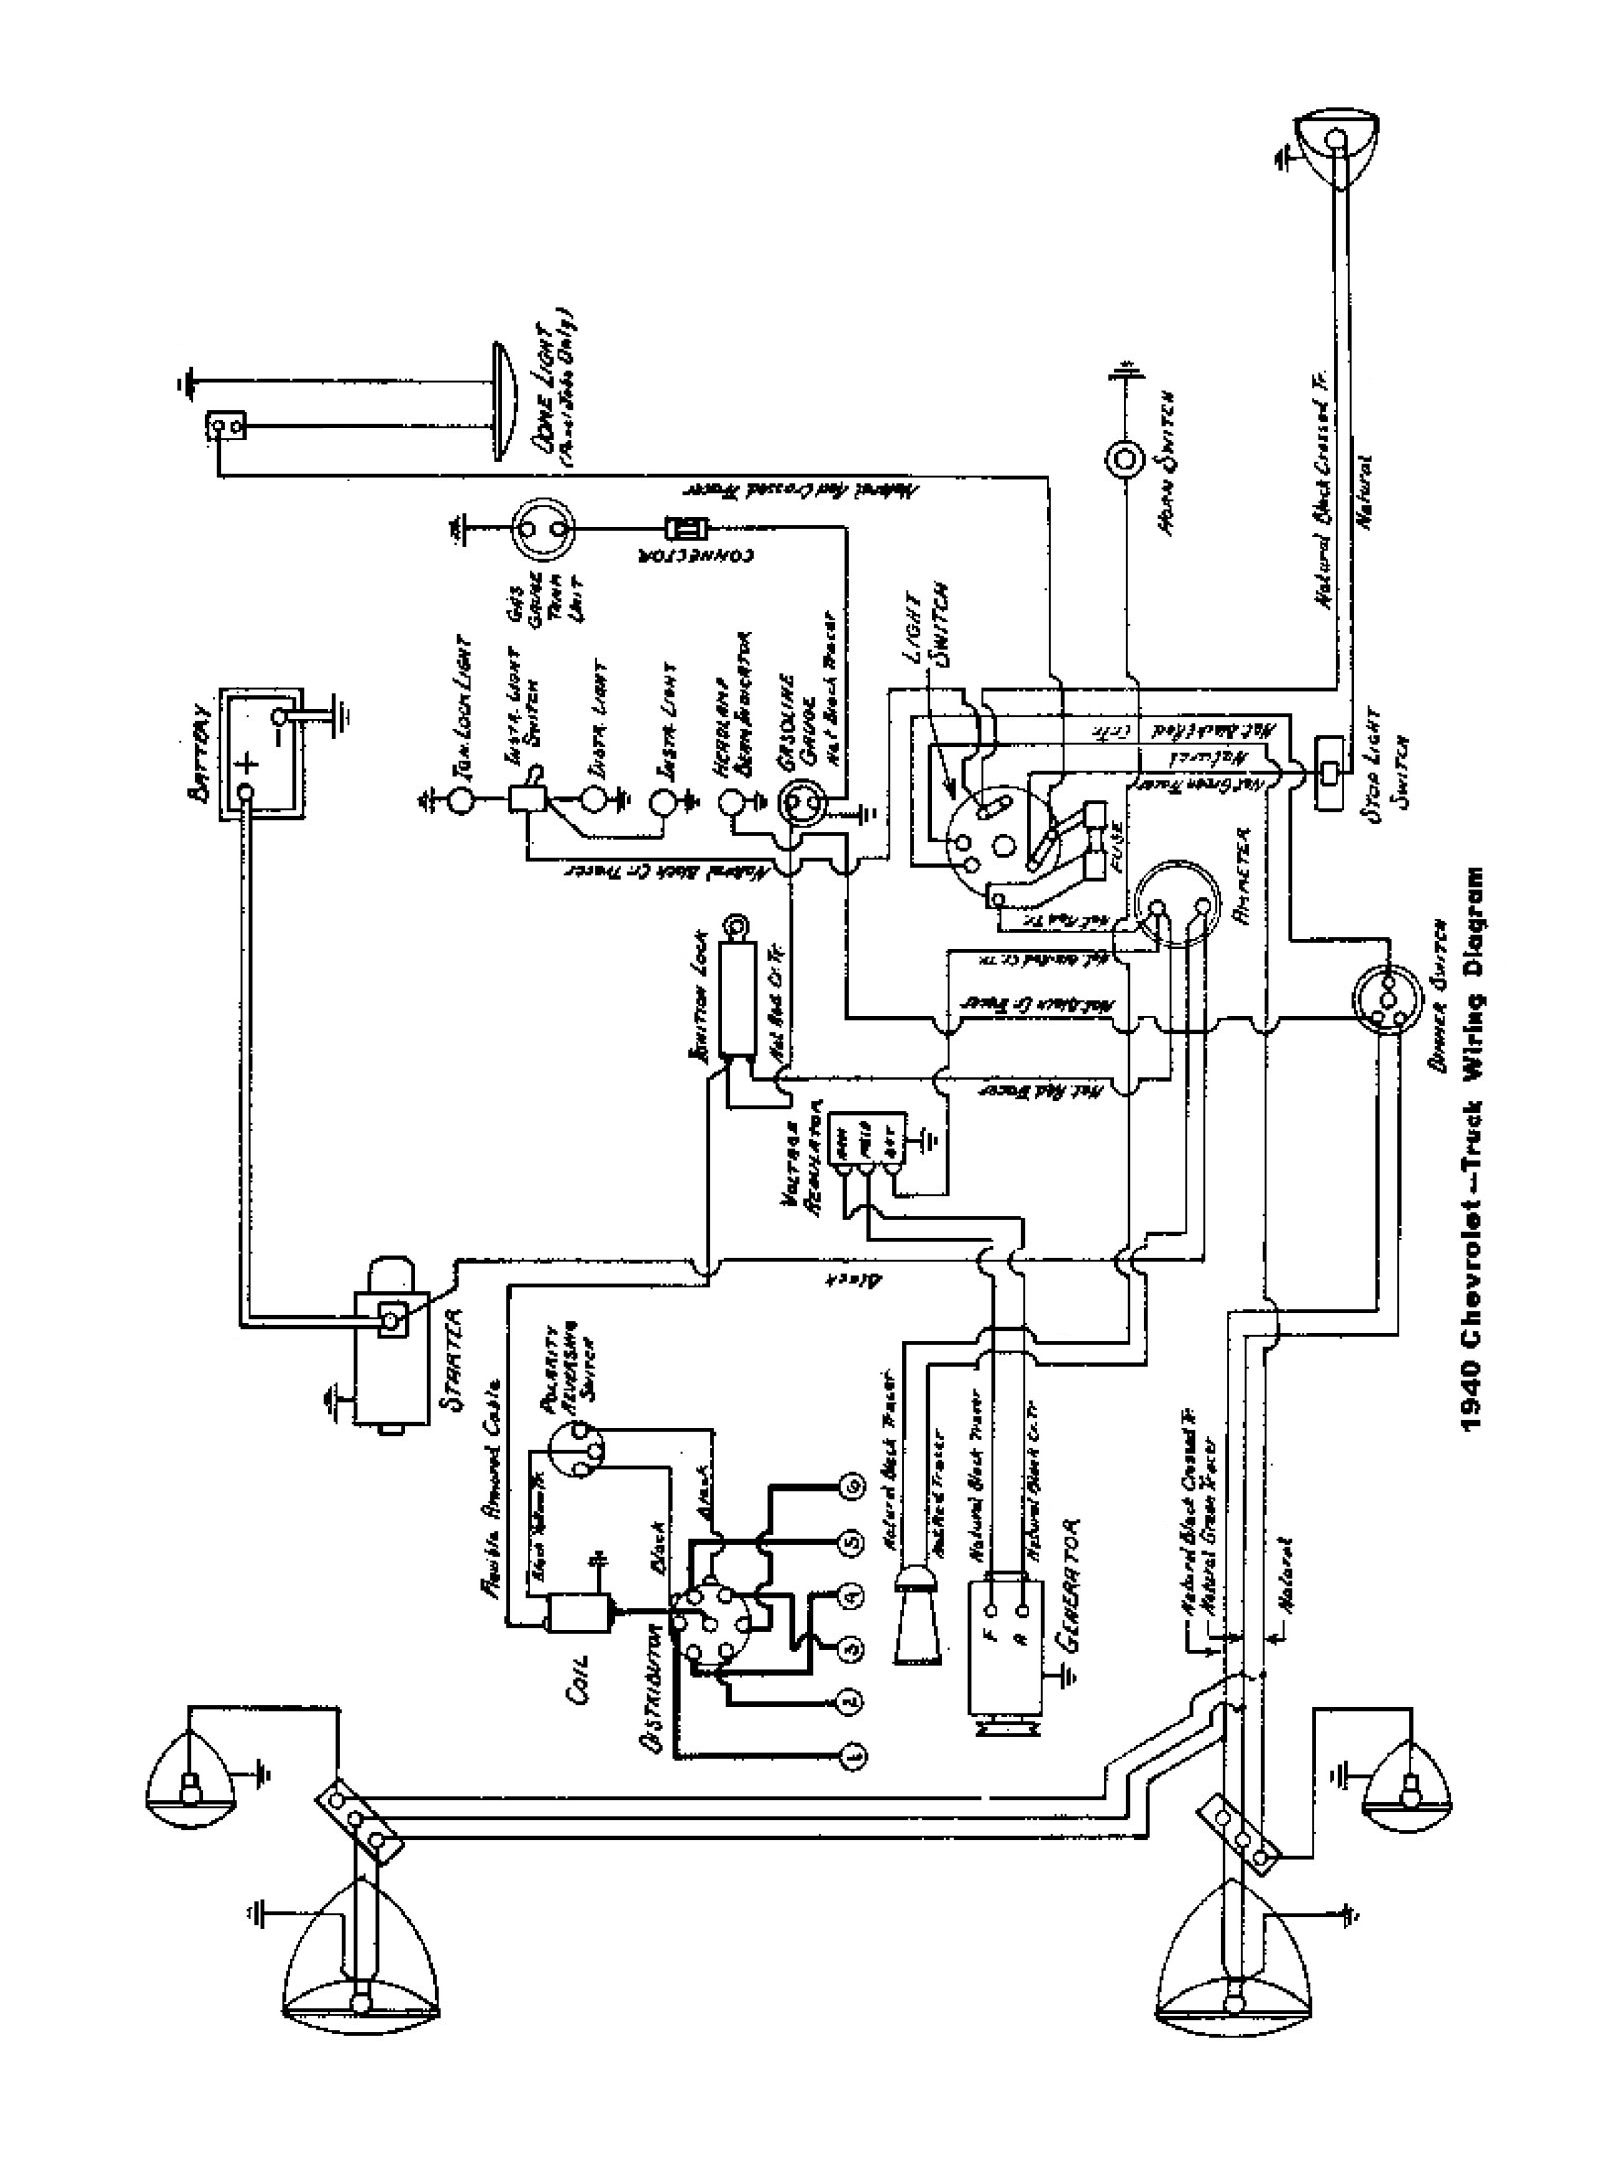 40truck chevrolet truck wiring diagrams chevrolet truck shop manual 1967 gmc pickup wiring diagram at panicattacktreatment.co